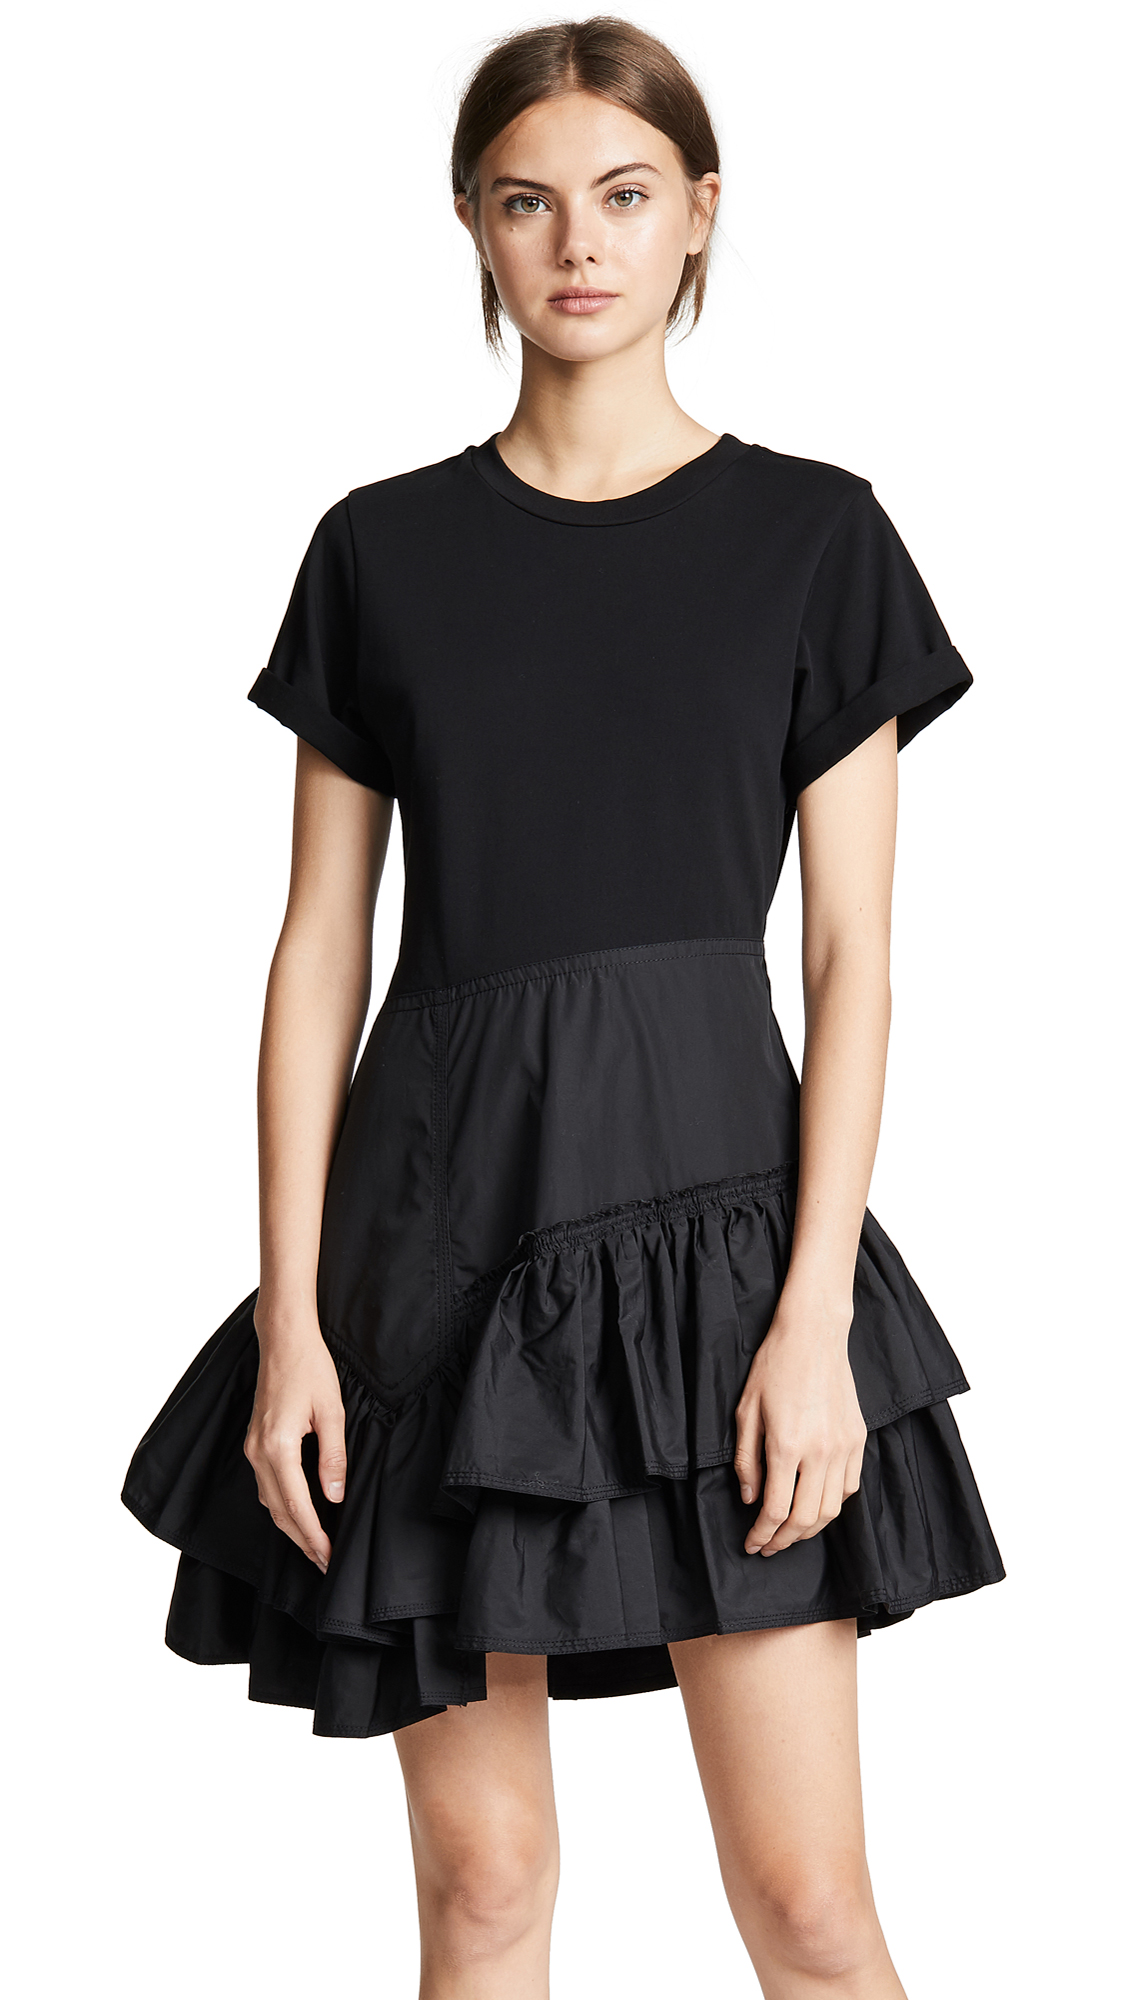 3.1 Phillip Lim Flamenco T-Shirt Dress - Black/Black